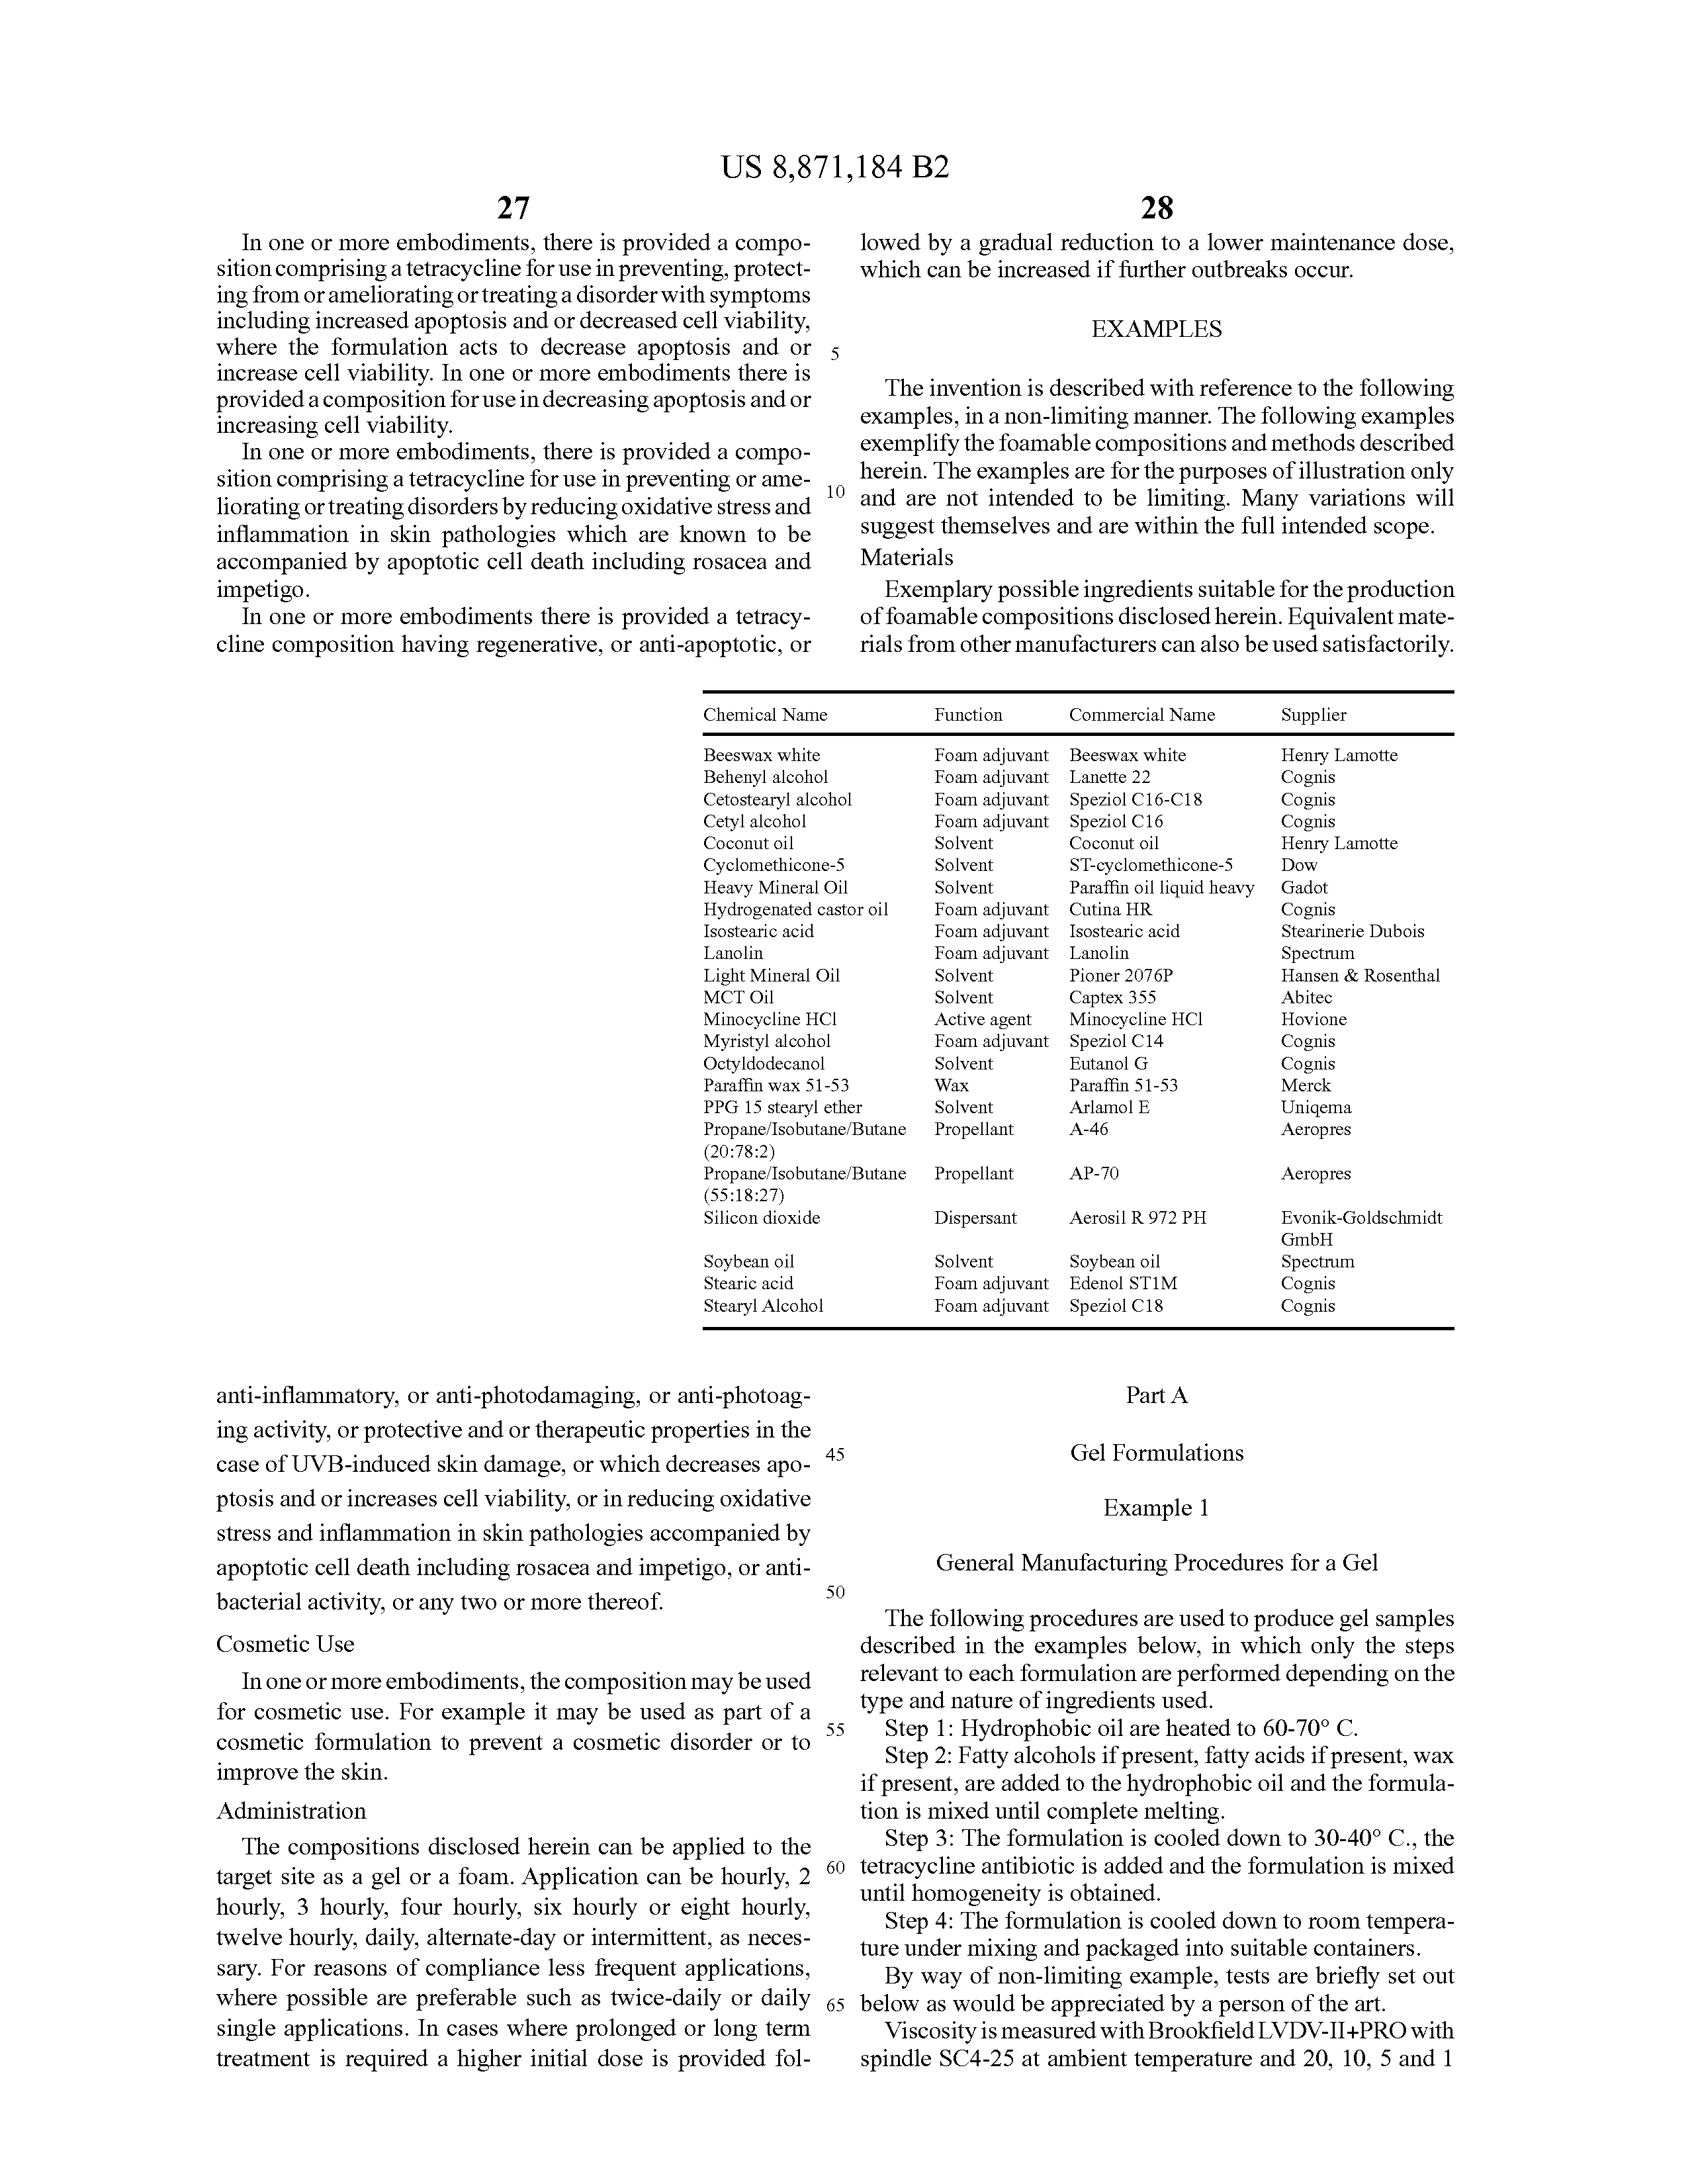 US 8871184 B2 - Topical Tetracycline Compositions - The Lens